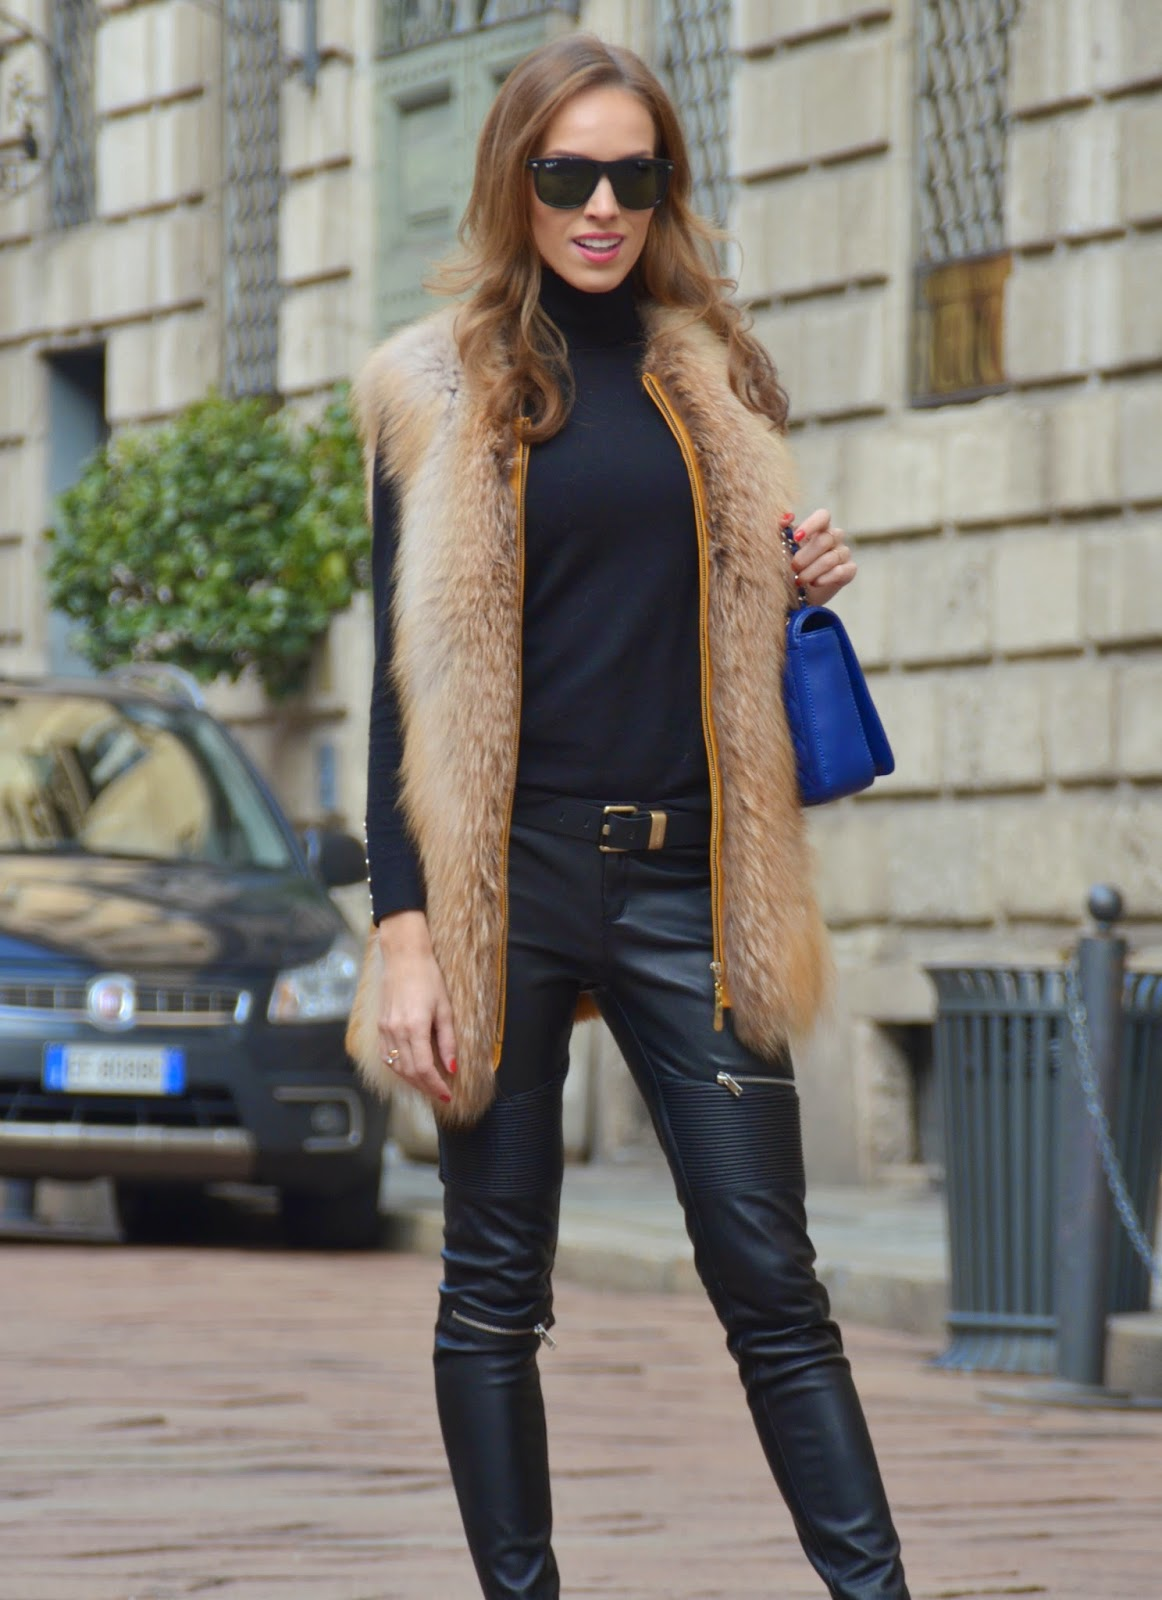 ray-ban-sunglasses-fur-vest-leather-zipper-trousers-calvin-klein-belt